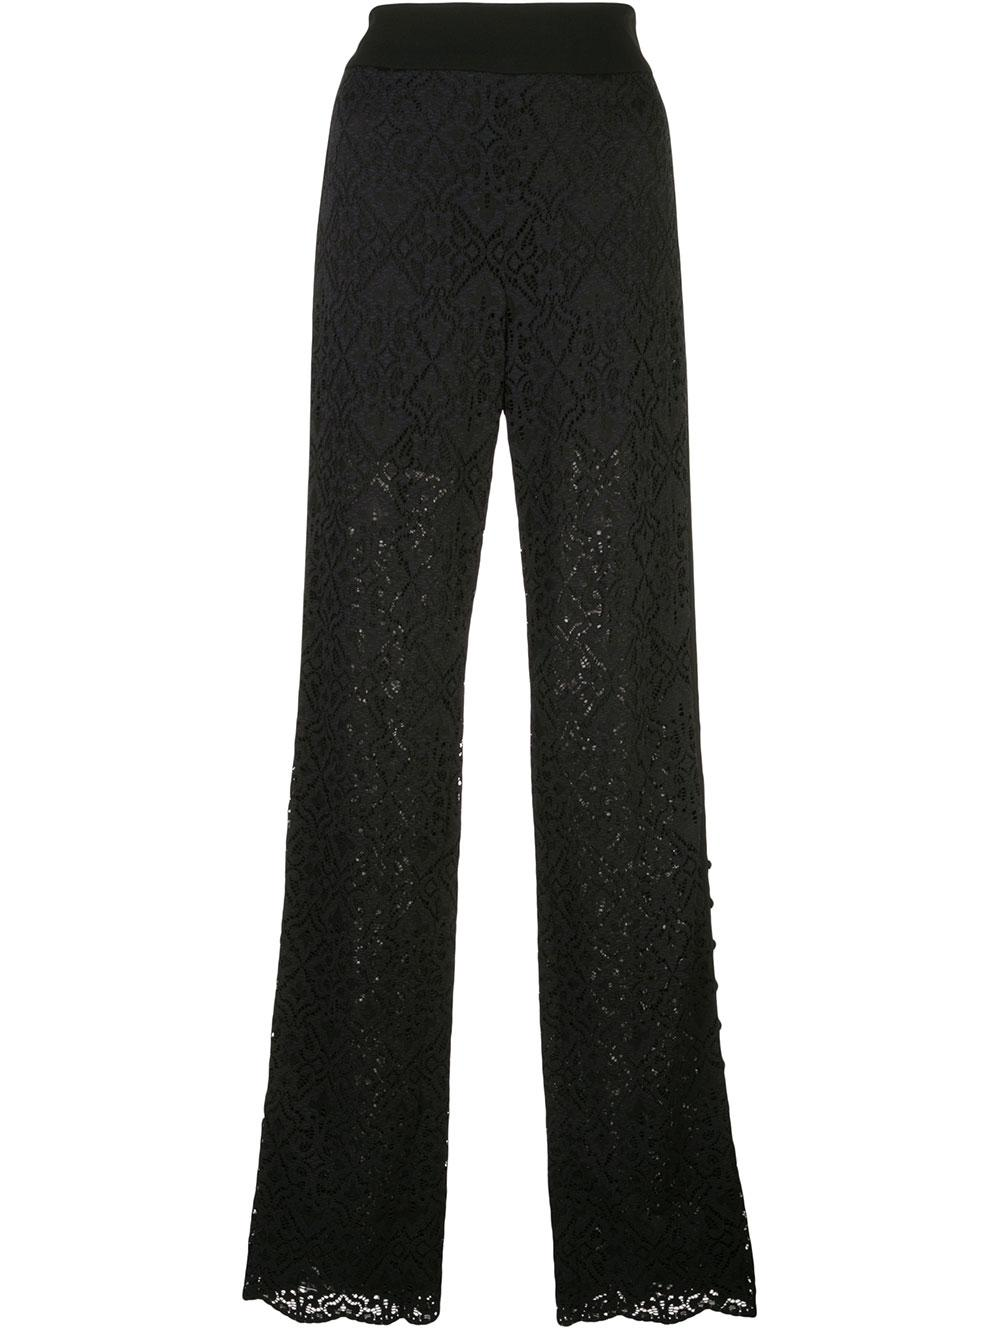 Multimedia Lace Pant Item # 120-4009-A